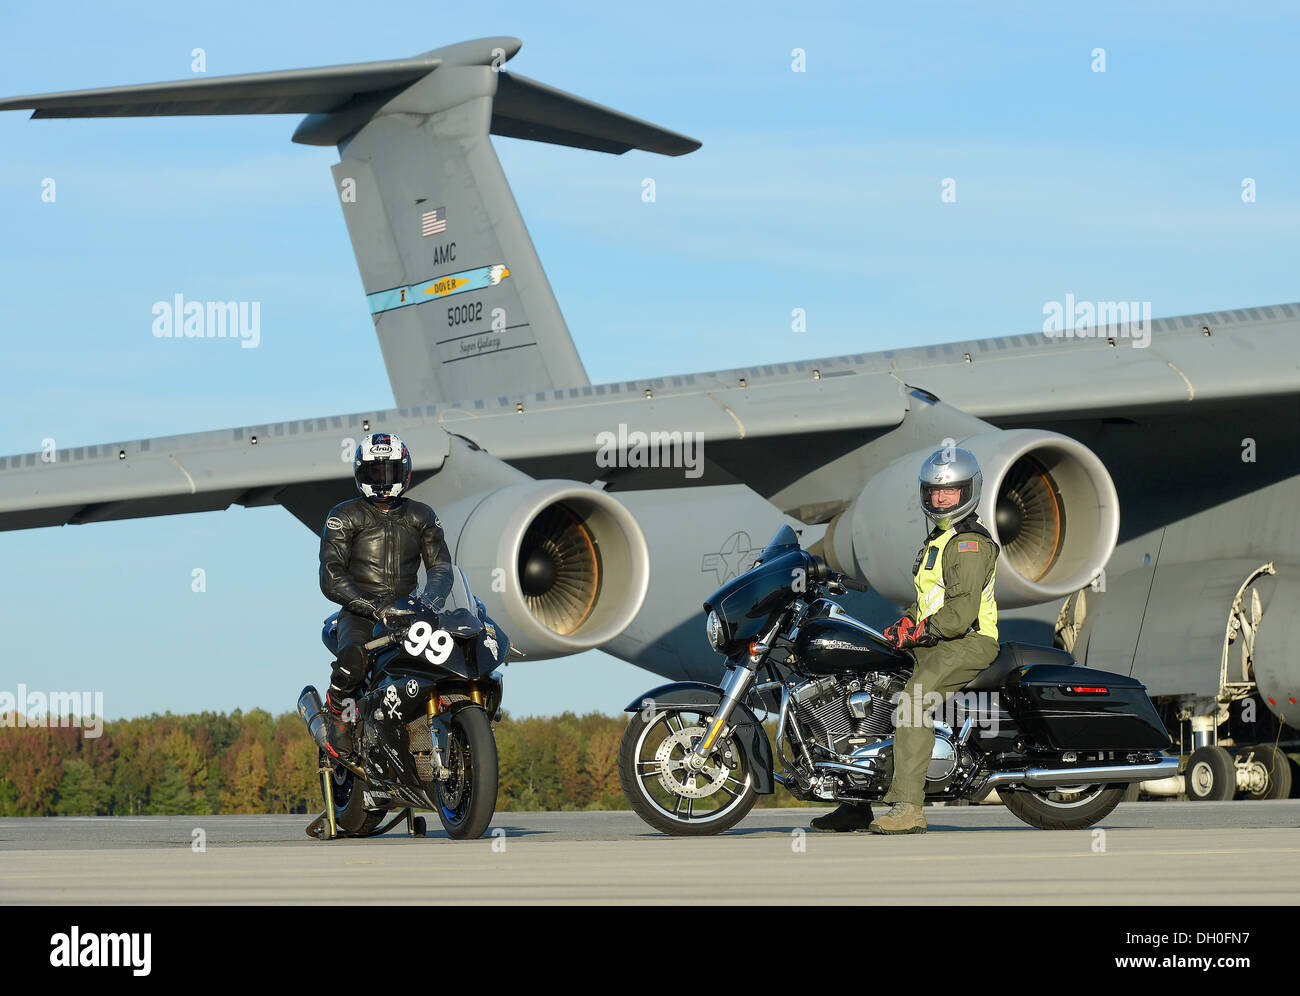 Sam Fleming, Army of Darkness motorcycle endurance racing team team leader (left), sits on a BMW S1000RR, number 99, wearing full racing safety gear while Technical Sgt. David Grant of the 3rd Airlift Squadron sits on a Harley Davidson Street Glide Specia - Stock Image